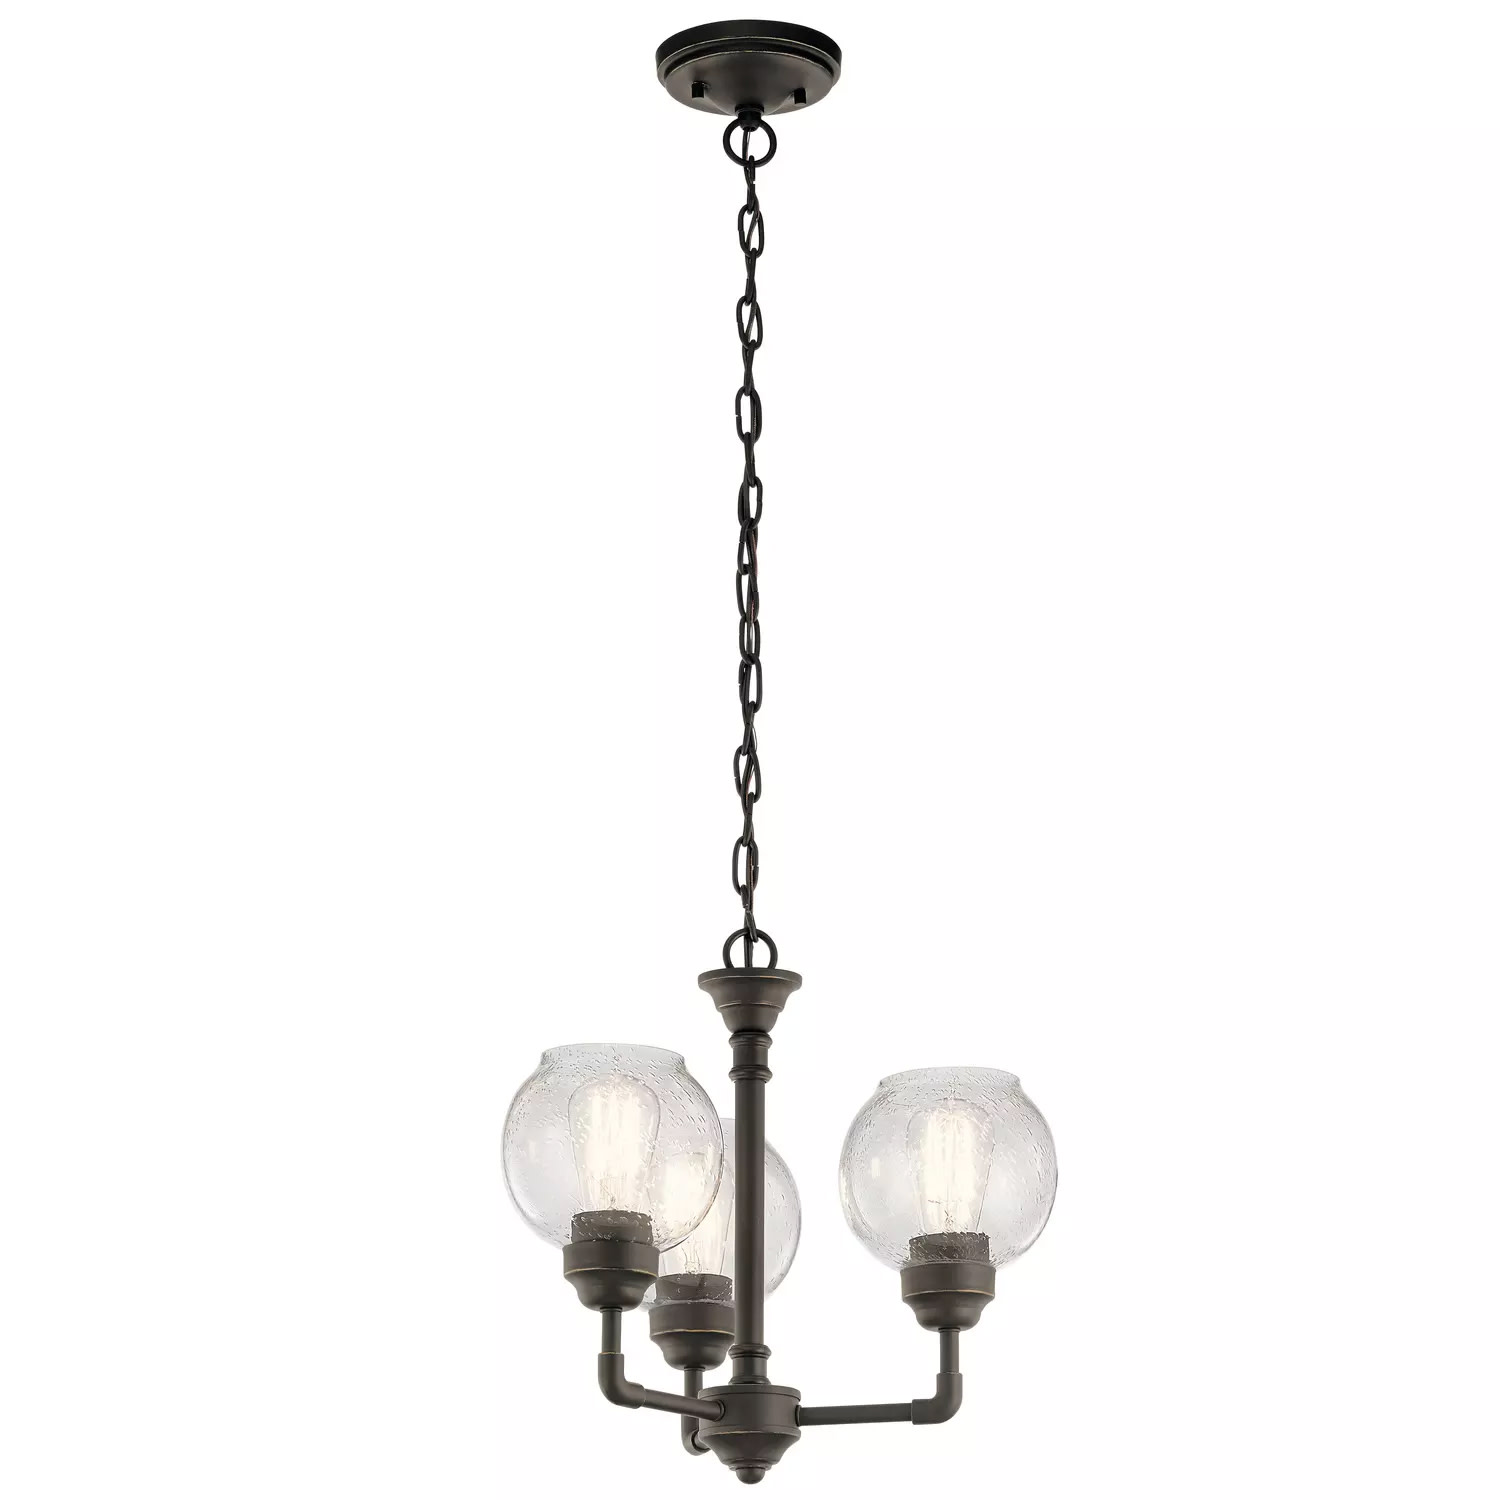 hight resolution of kichler 43992oz niles 3 light 16 wide 1 tier shaded chandelier installing new light fixture old wiring including tanglewood 16 light